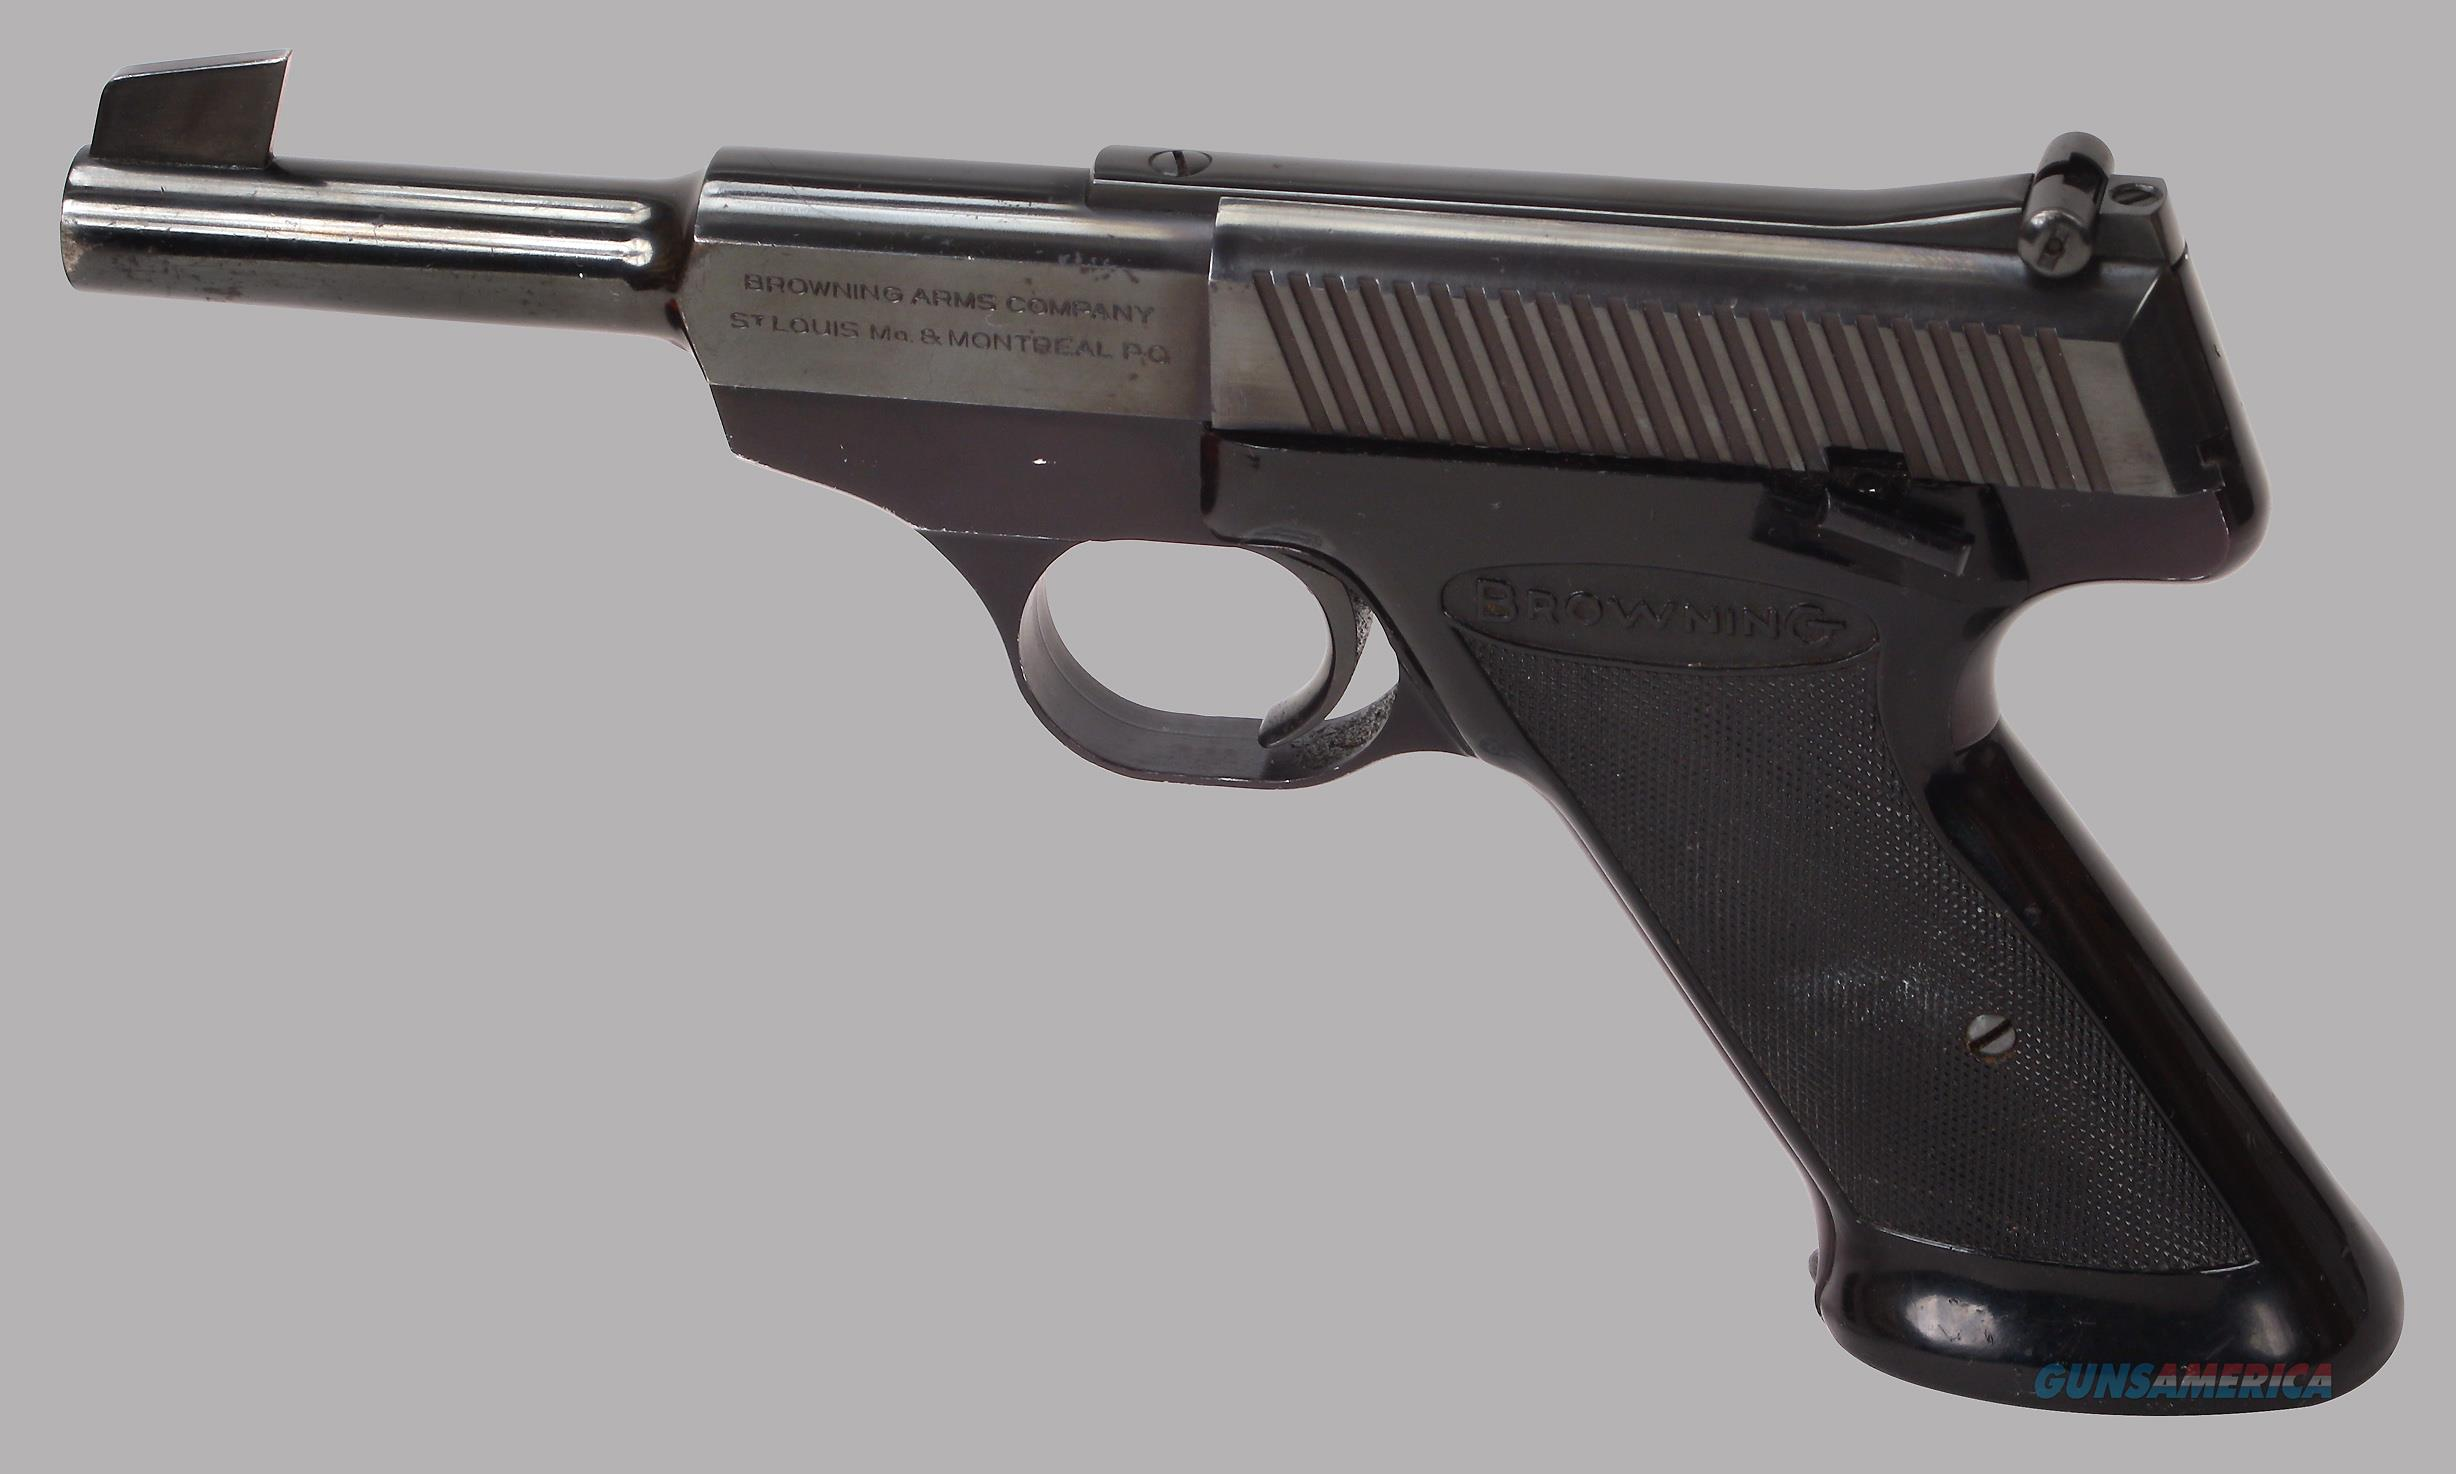 Browning 22LR Nomad Pistol  Guns > Pistols > Browning Pistols > Other Autos